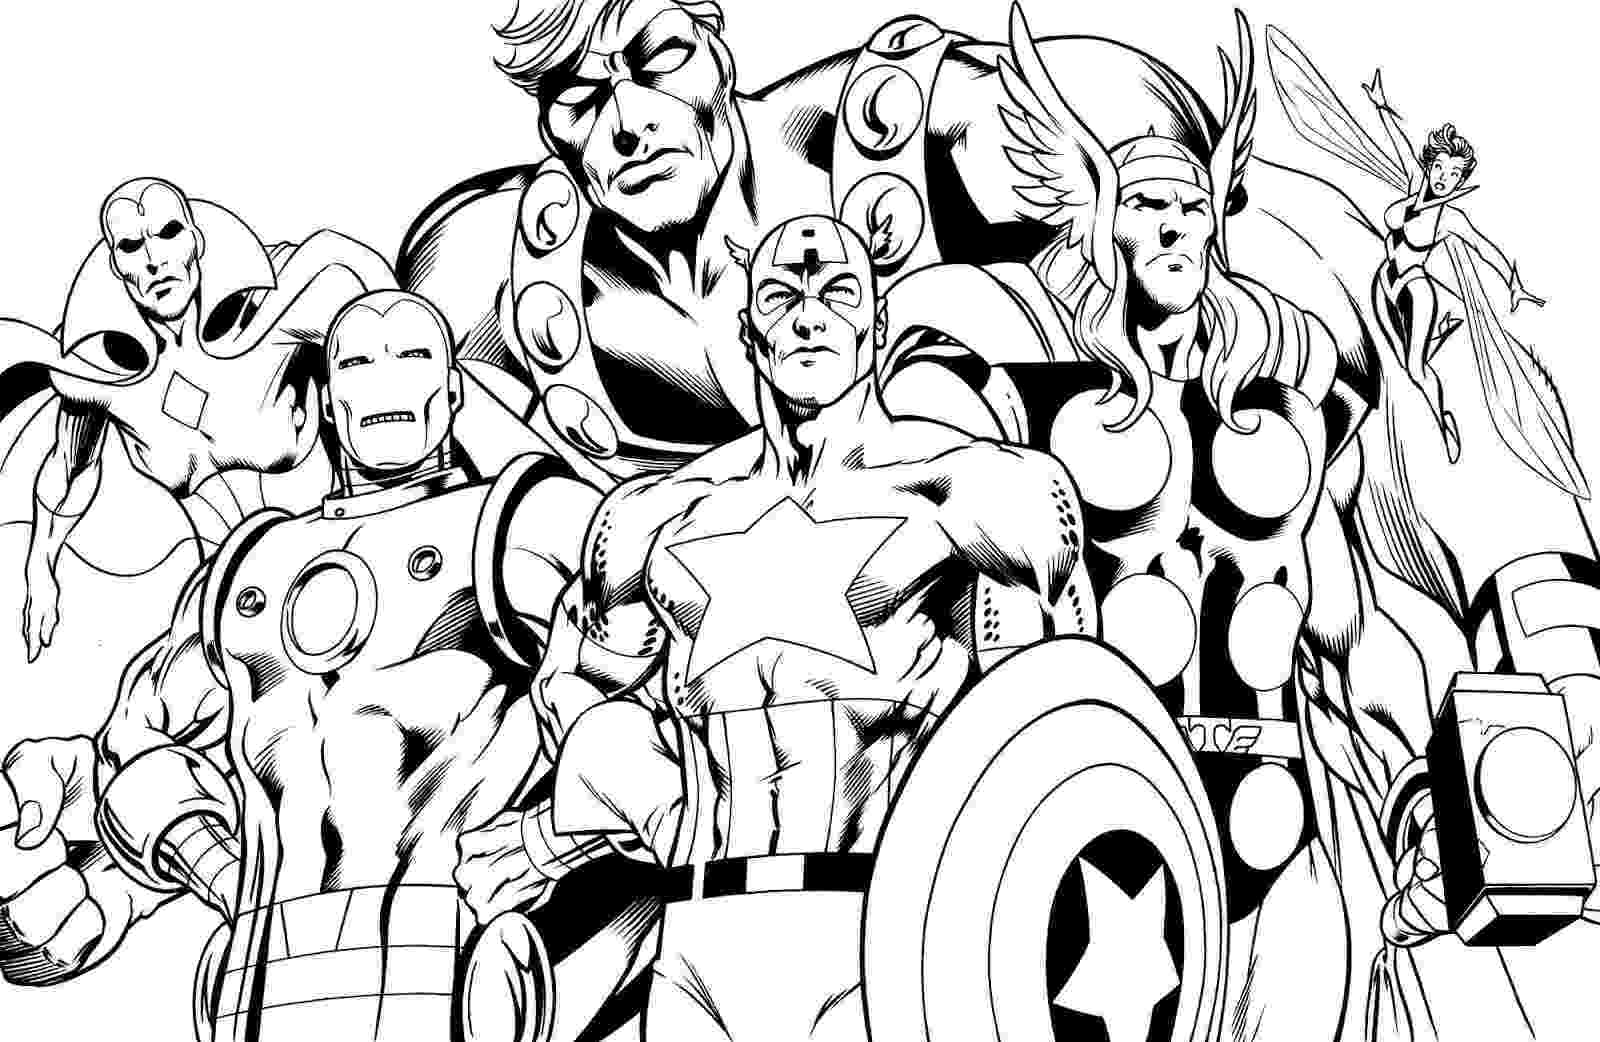 age of ultron coloring book 30 wonderful avengers coloring pages for your toddler book coloring ultron age of